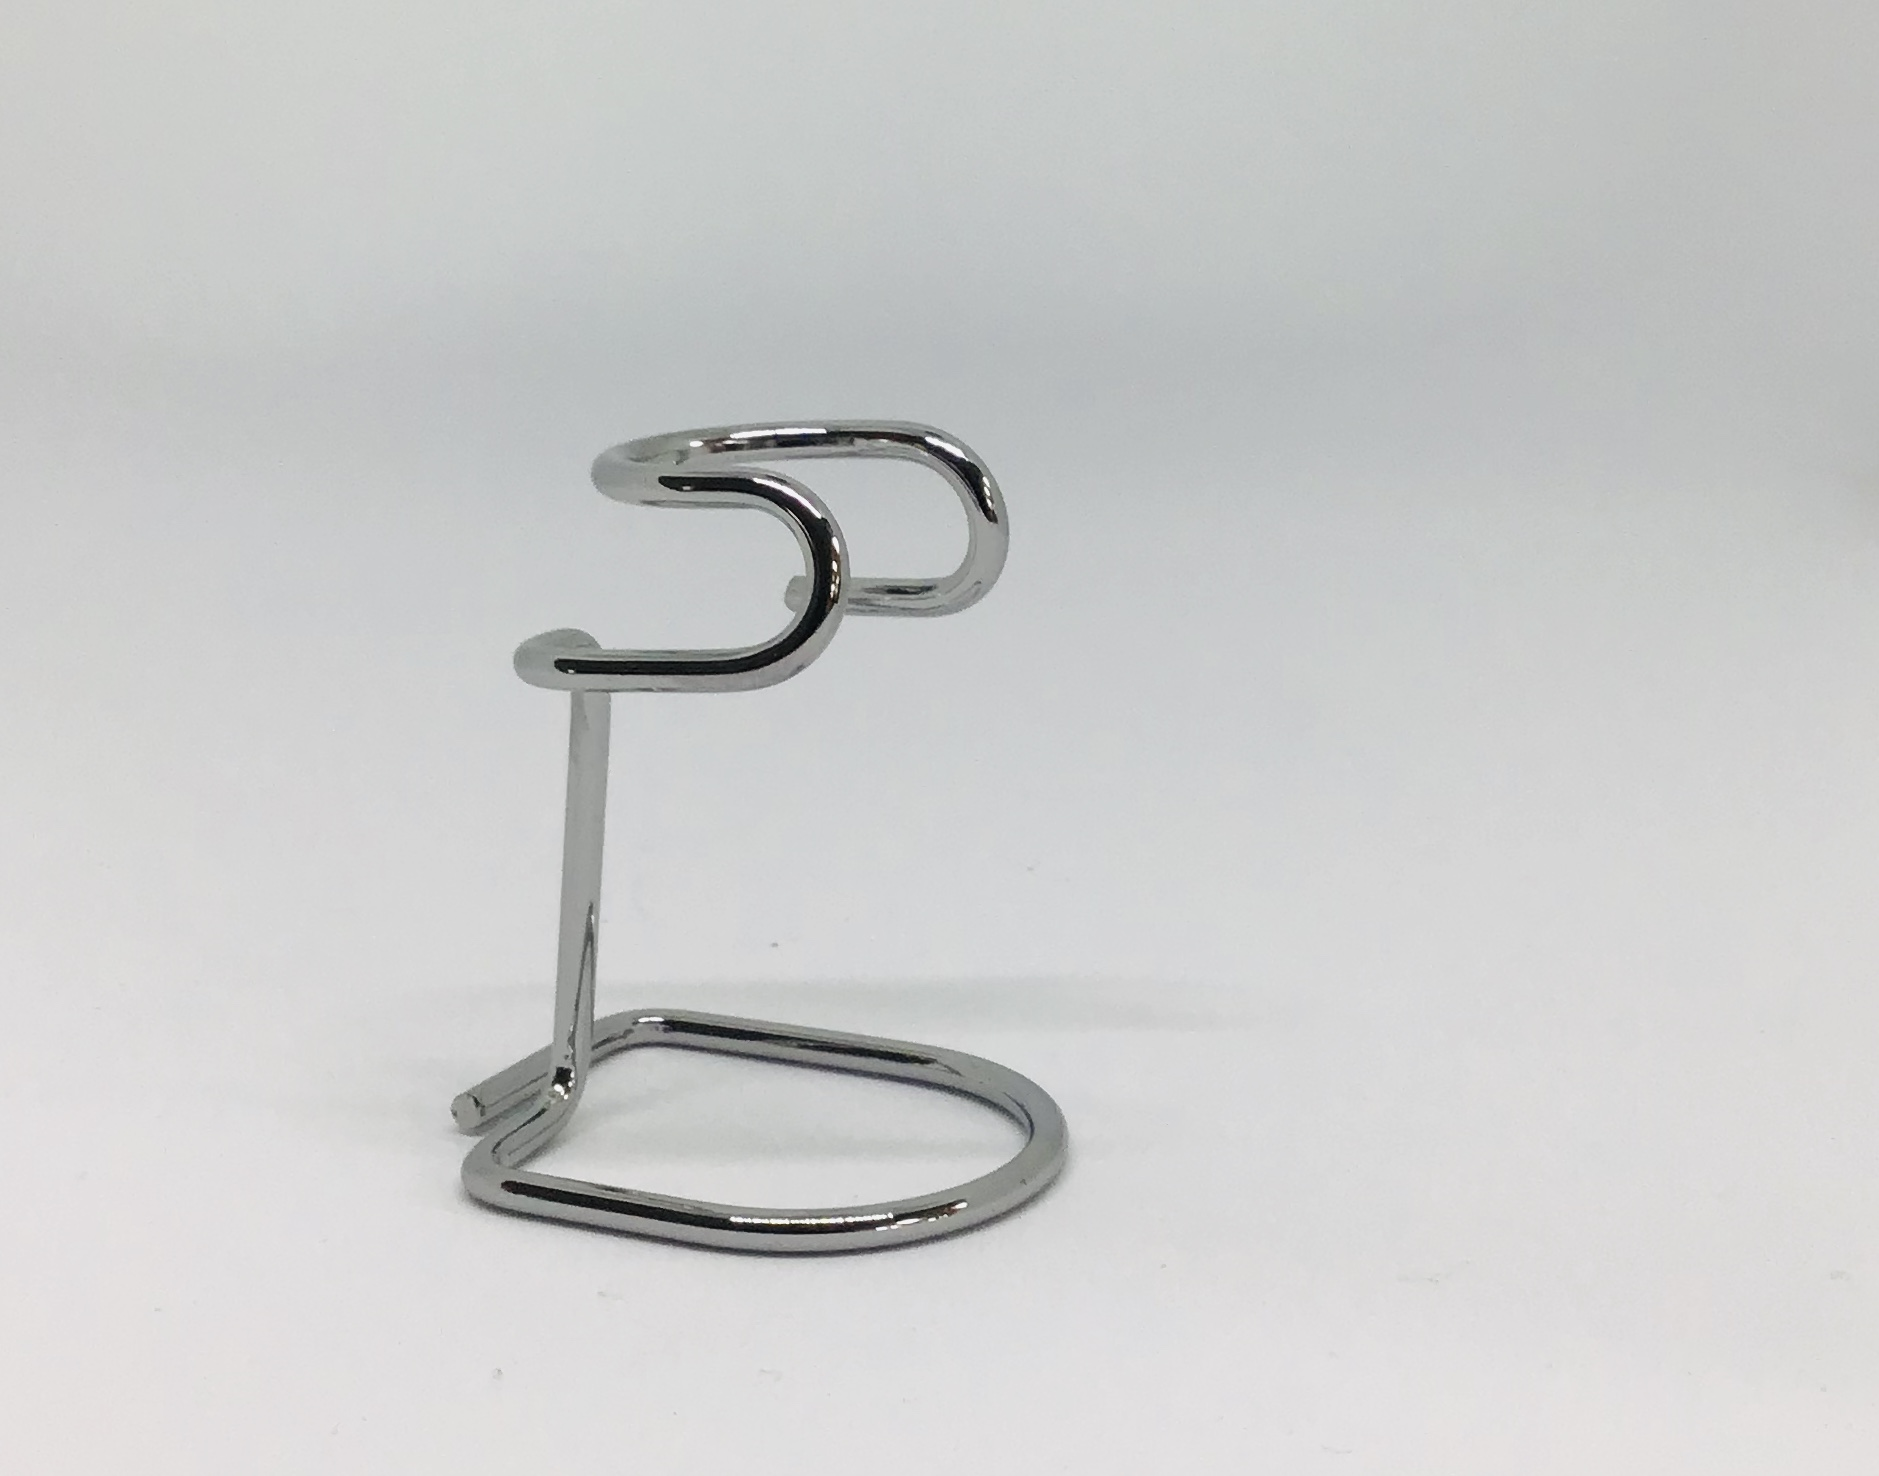 Omega Curved chrome brush stand